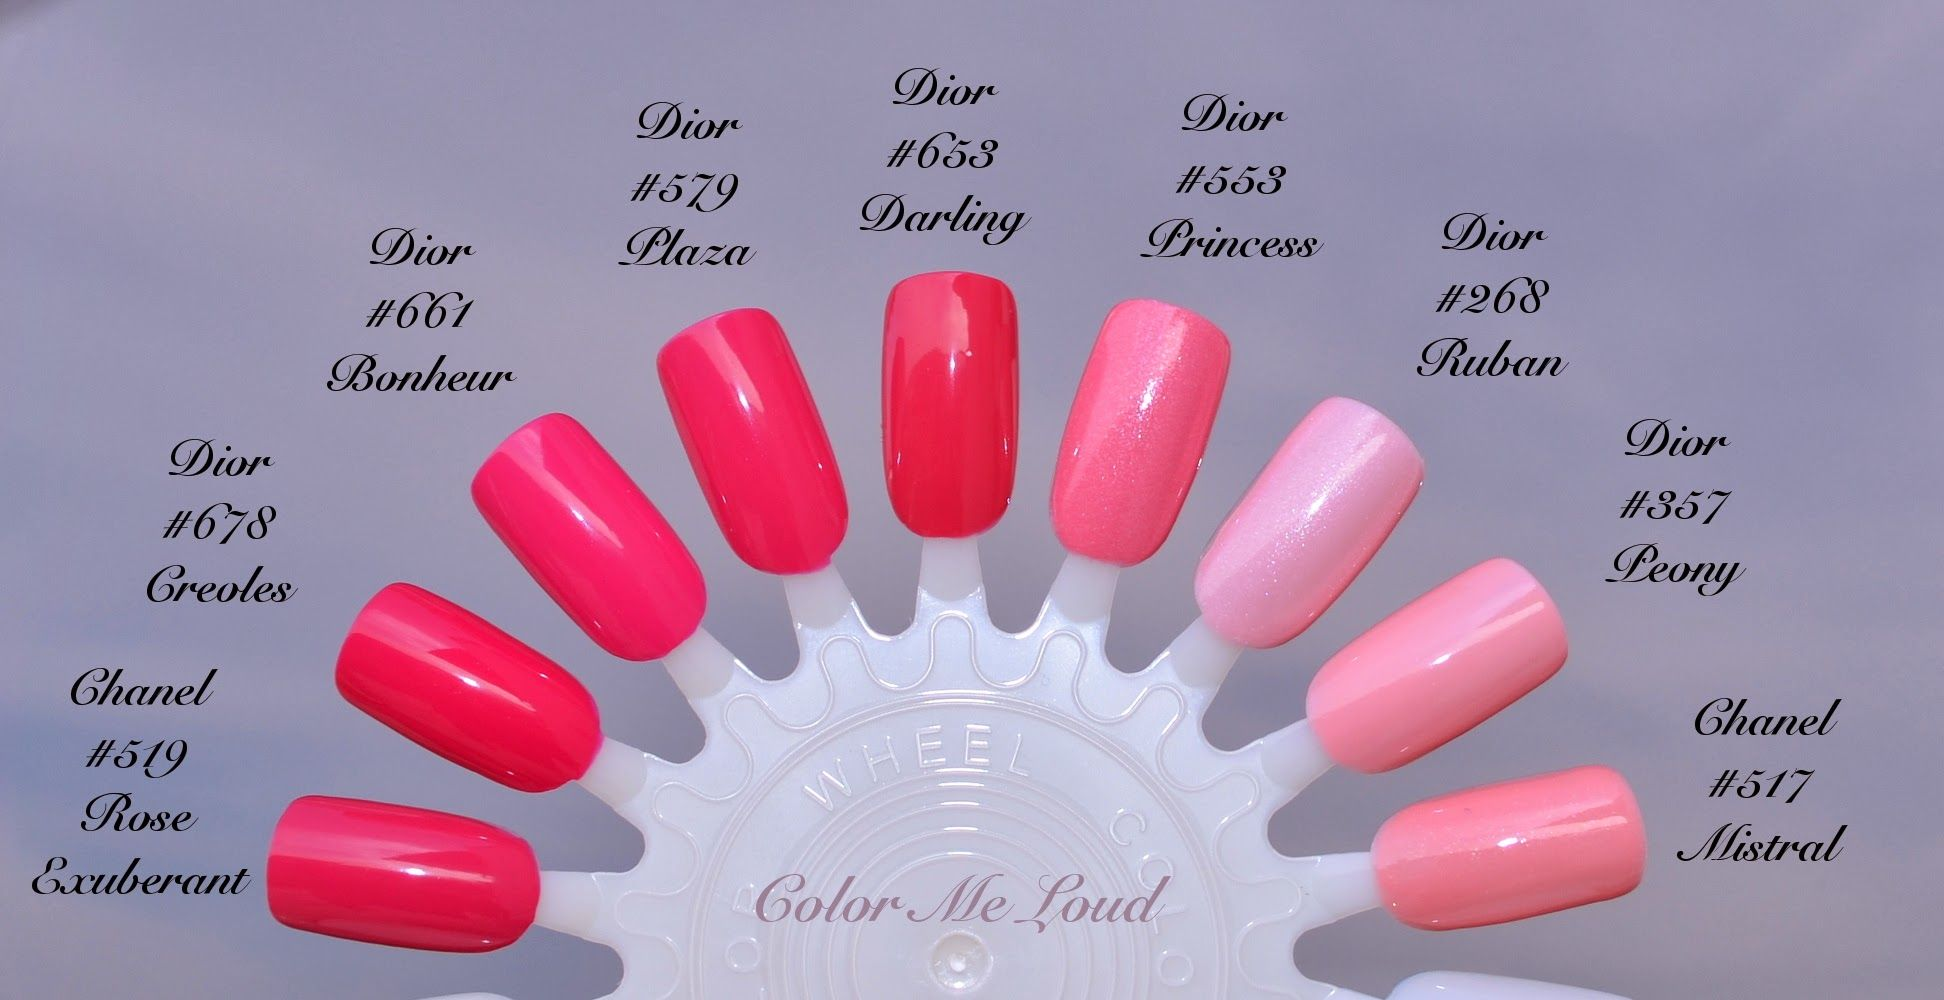 Comparisons of Dior Gel Vernis #661 Bonheur and #268 Ruban with ...